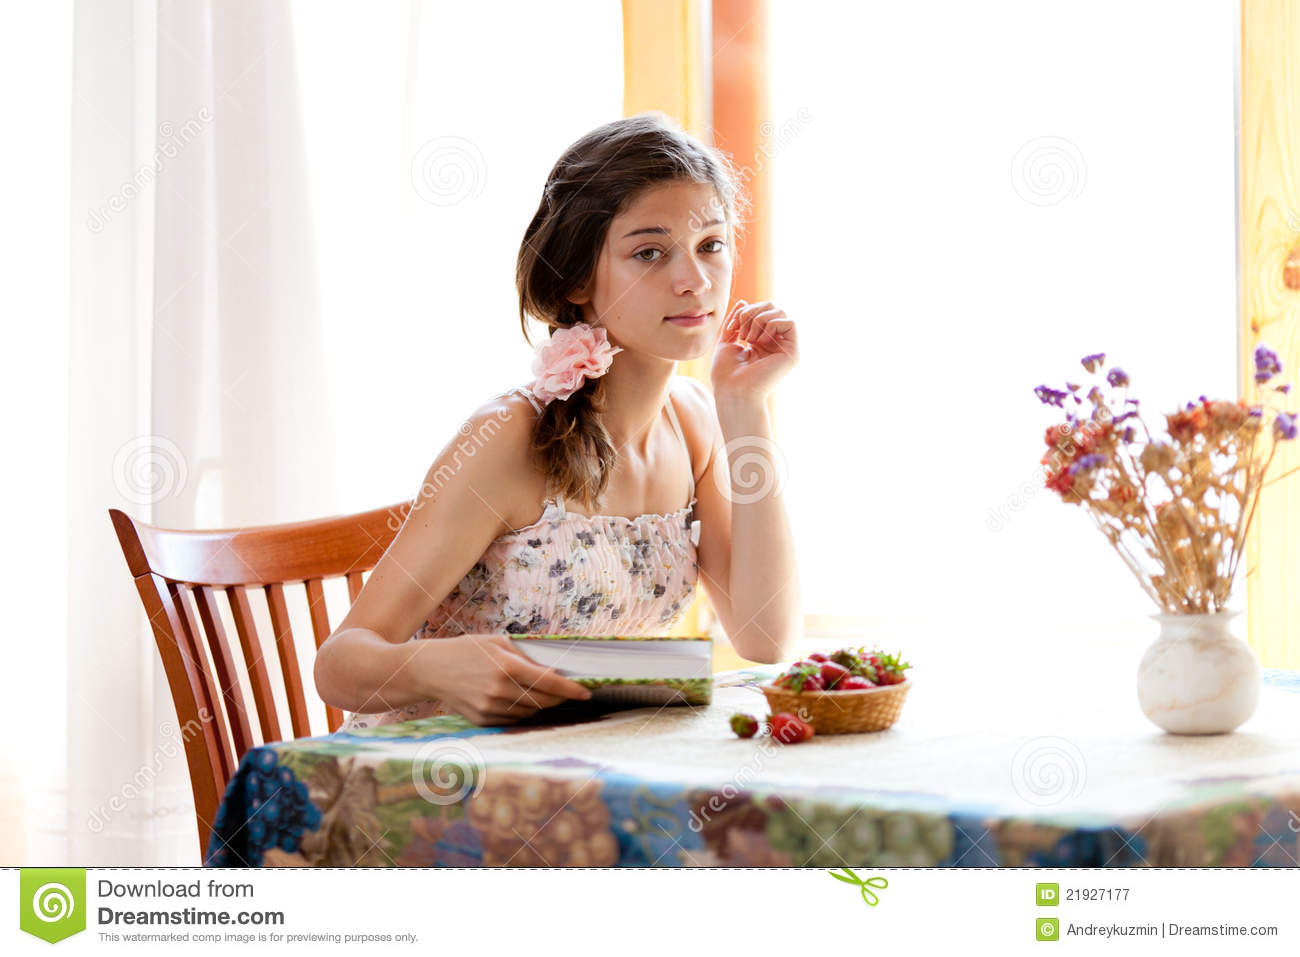 charming Girl Table Part - 2: Girl reading book sitting at table with strawberry